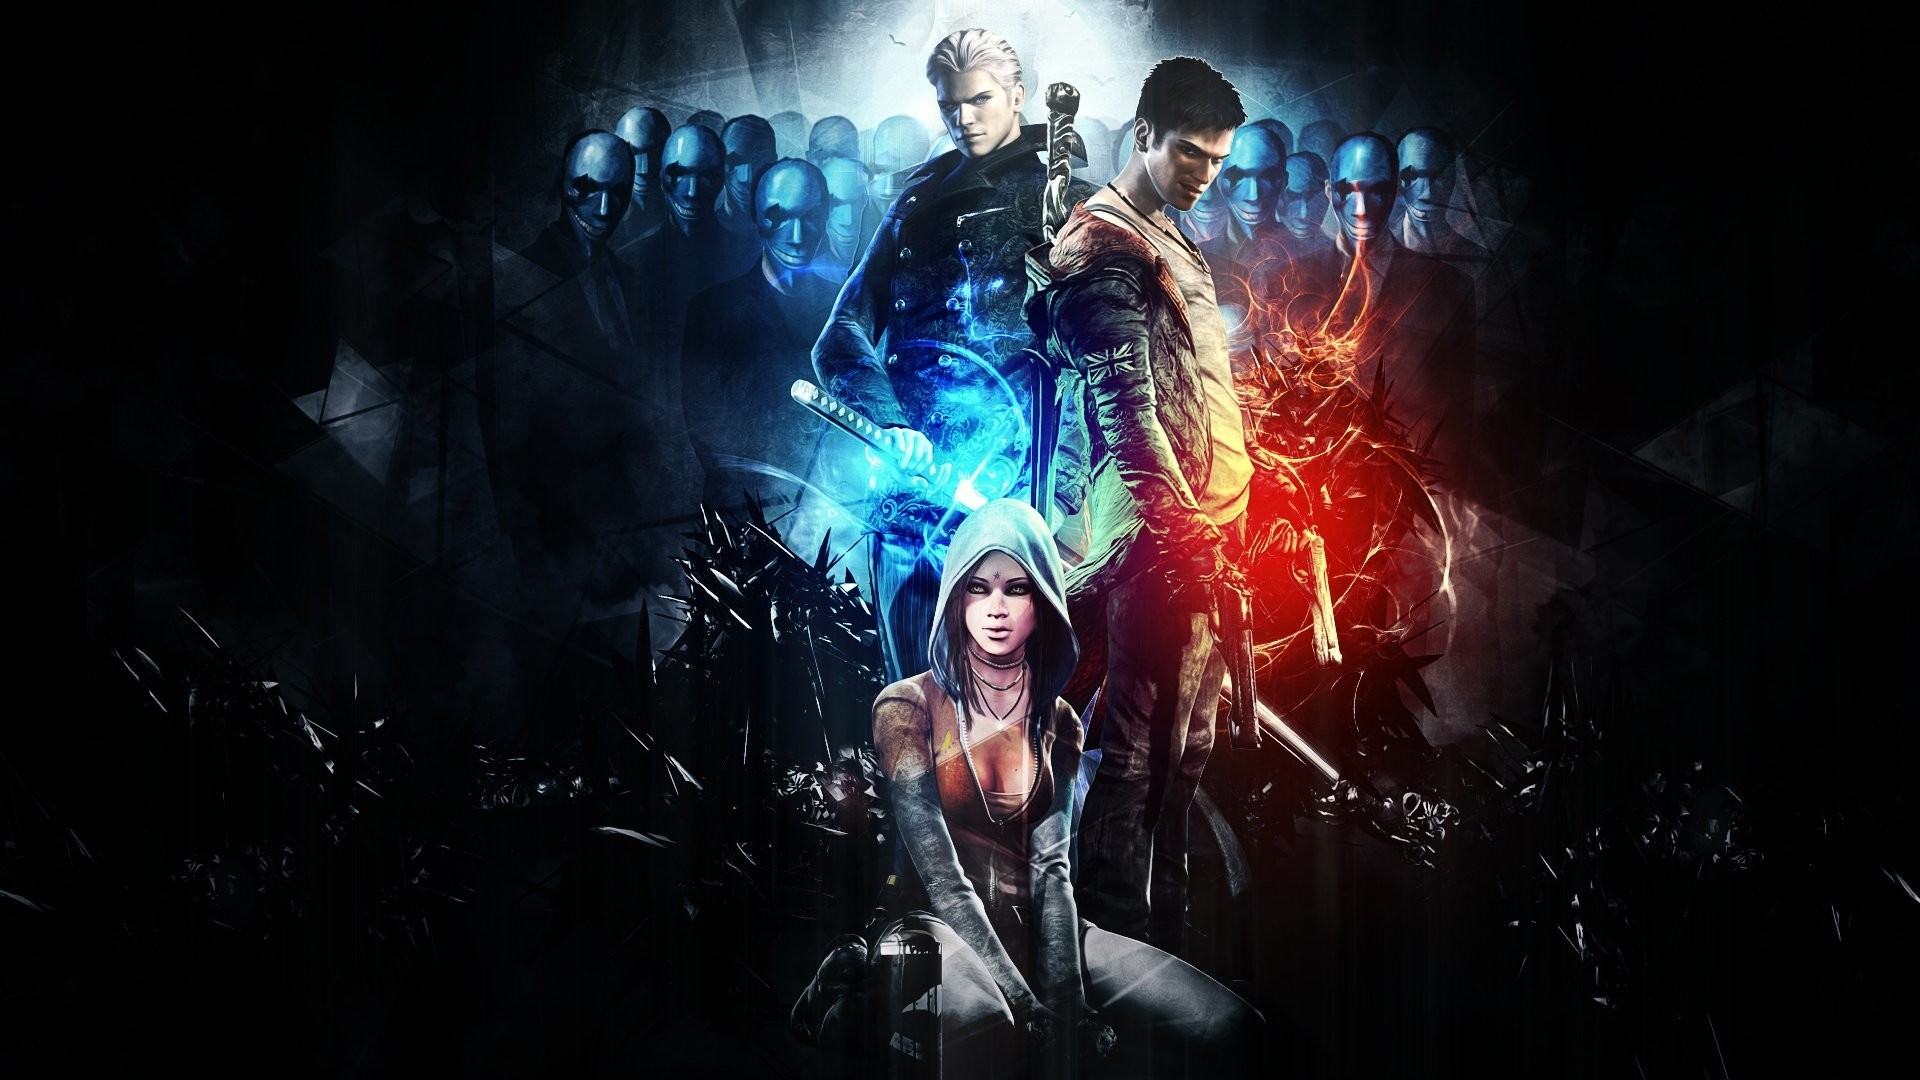 Devil May Cry 5 Wallpaper 4k Posted By Zoey Sellers